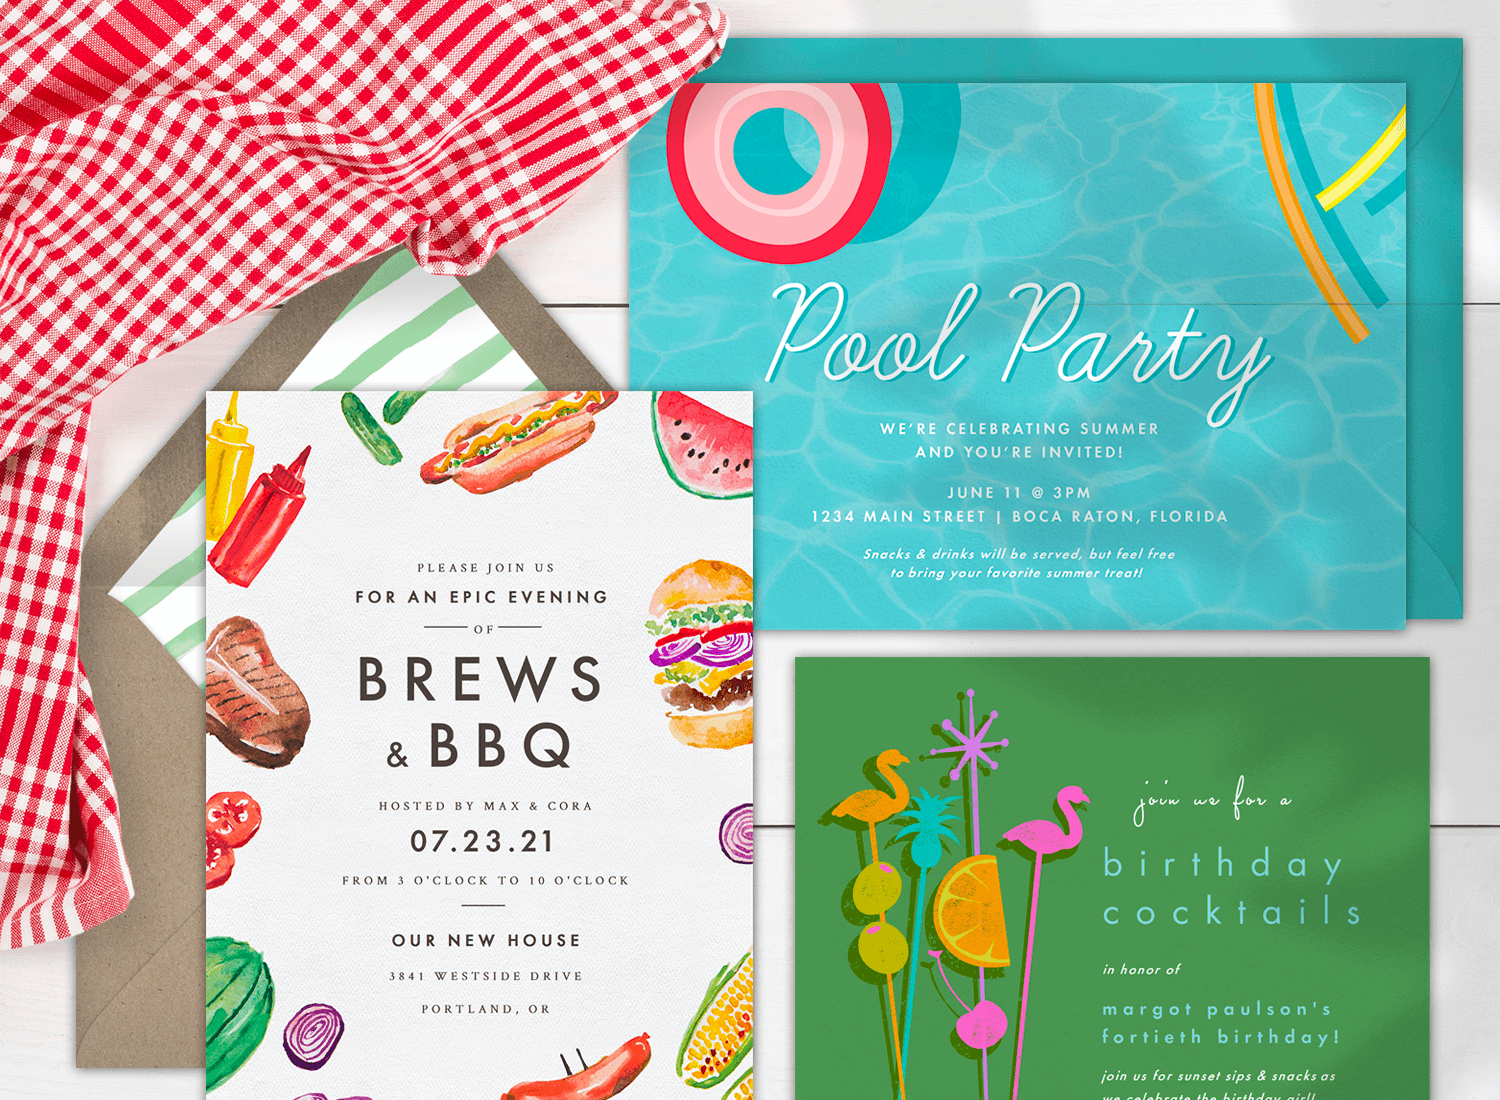 Three summertime party invitations with a checkered cloth beside them